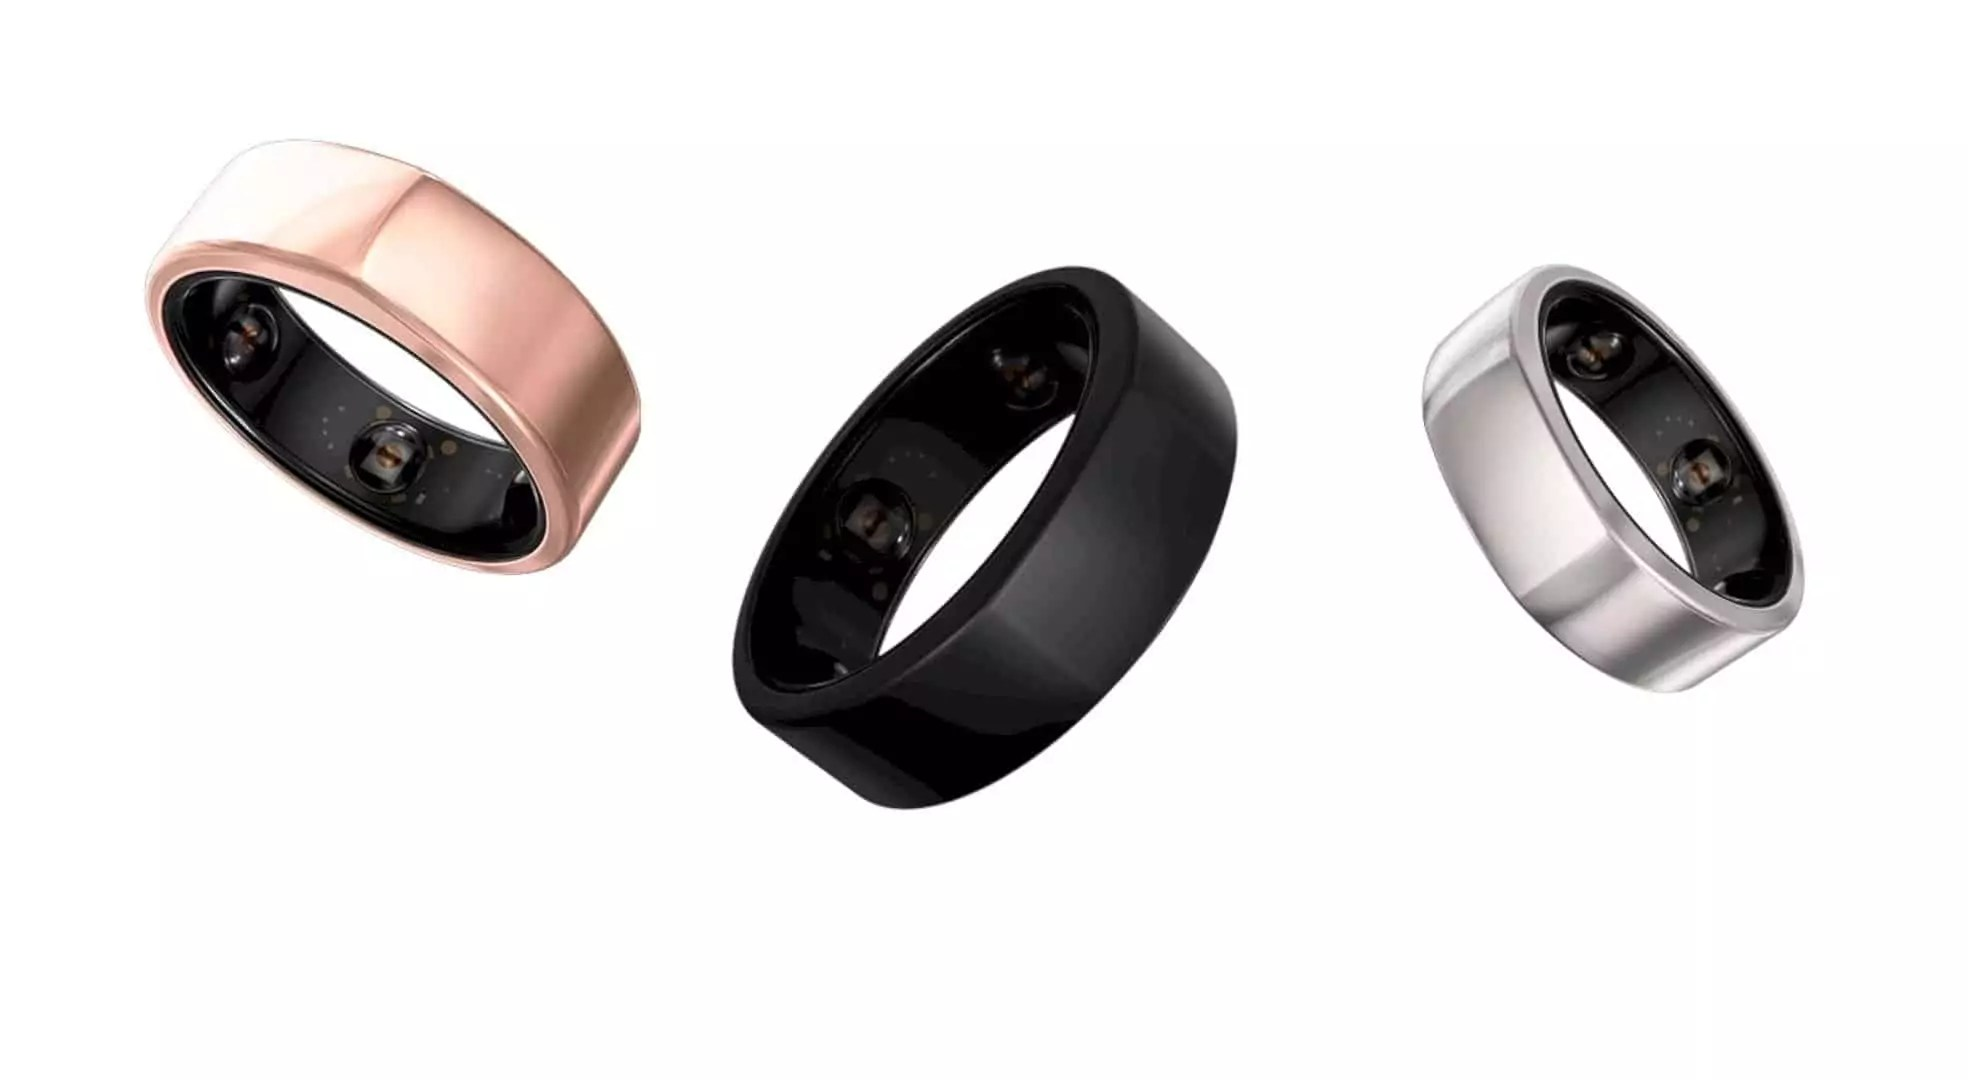 Oura Ring: Great Days Start with Good Sleep